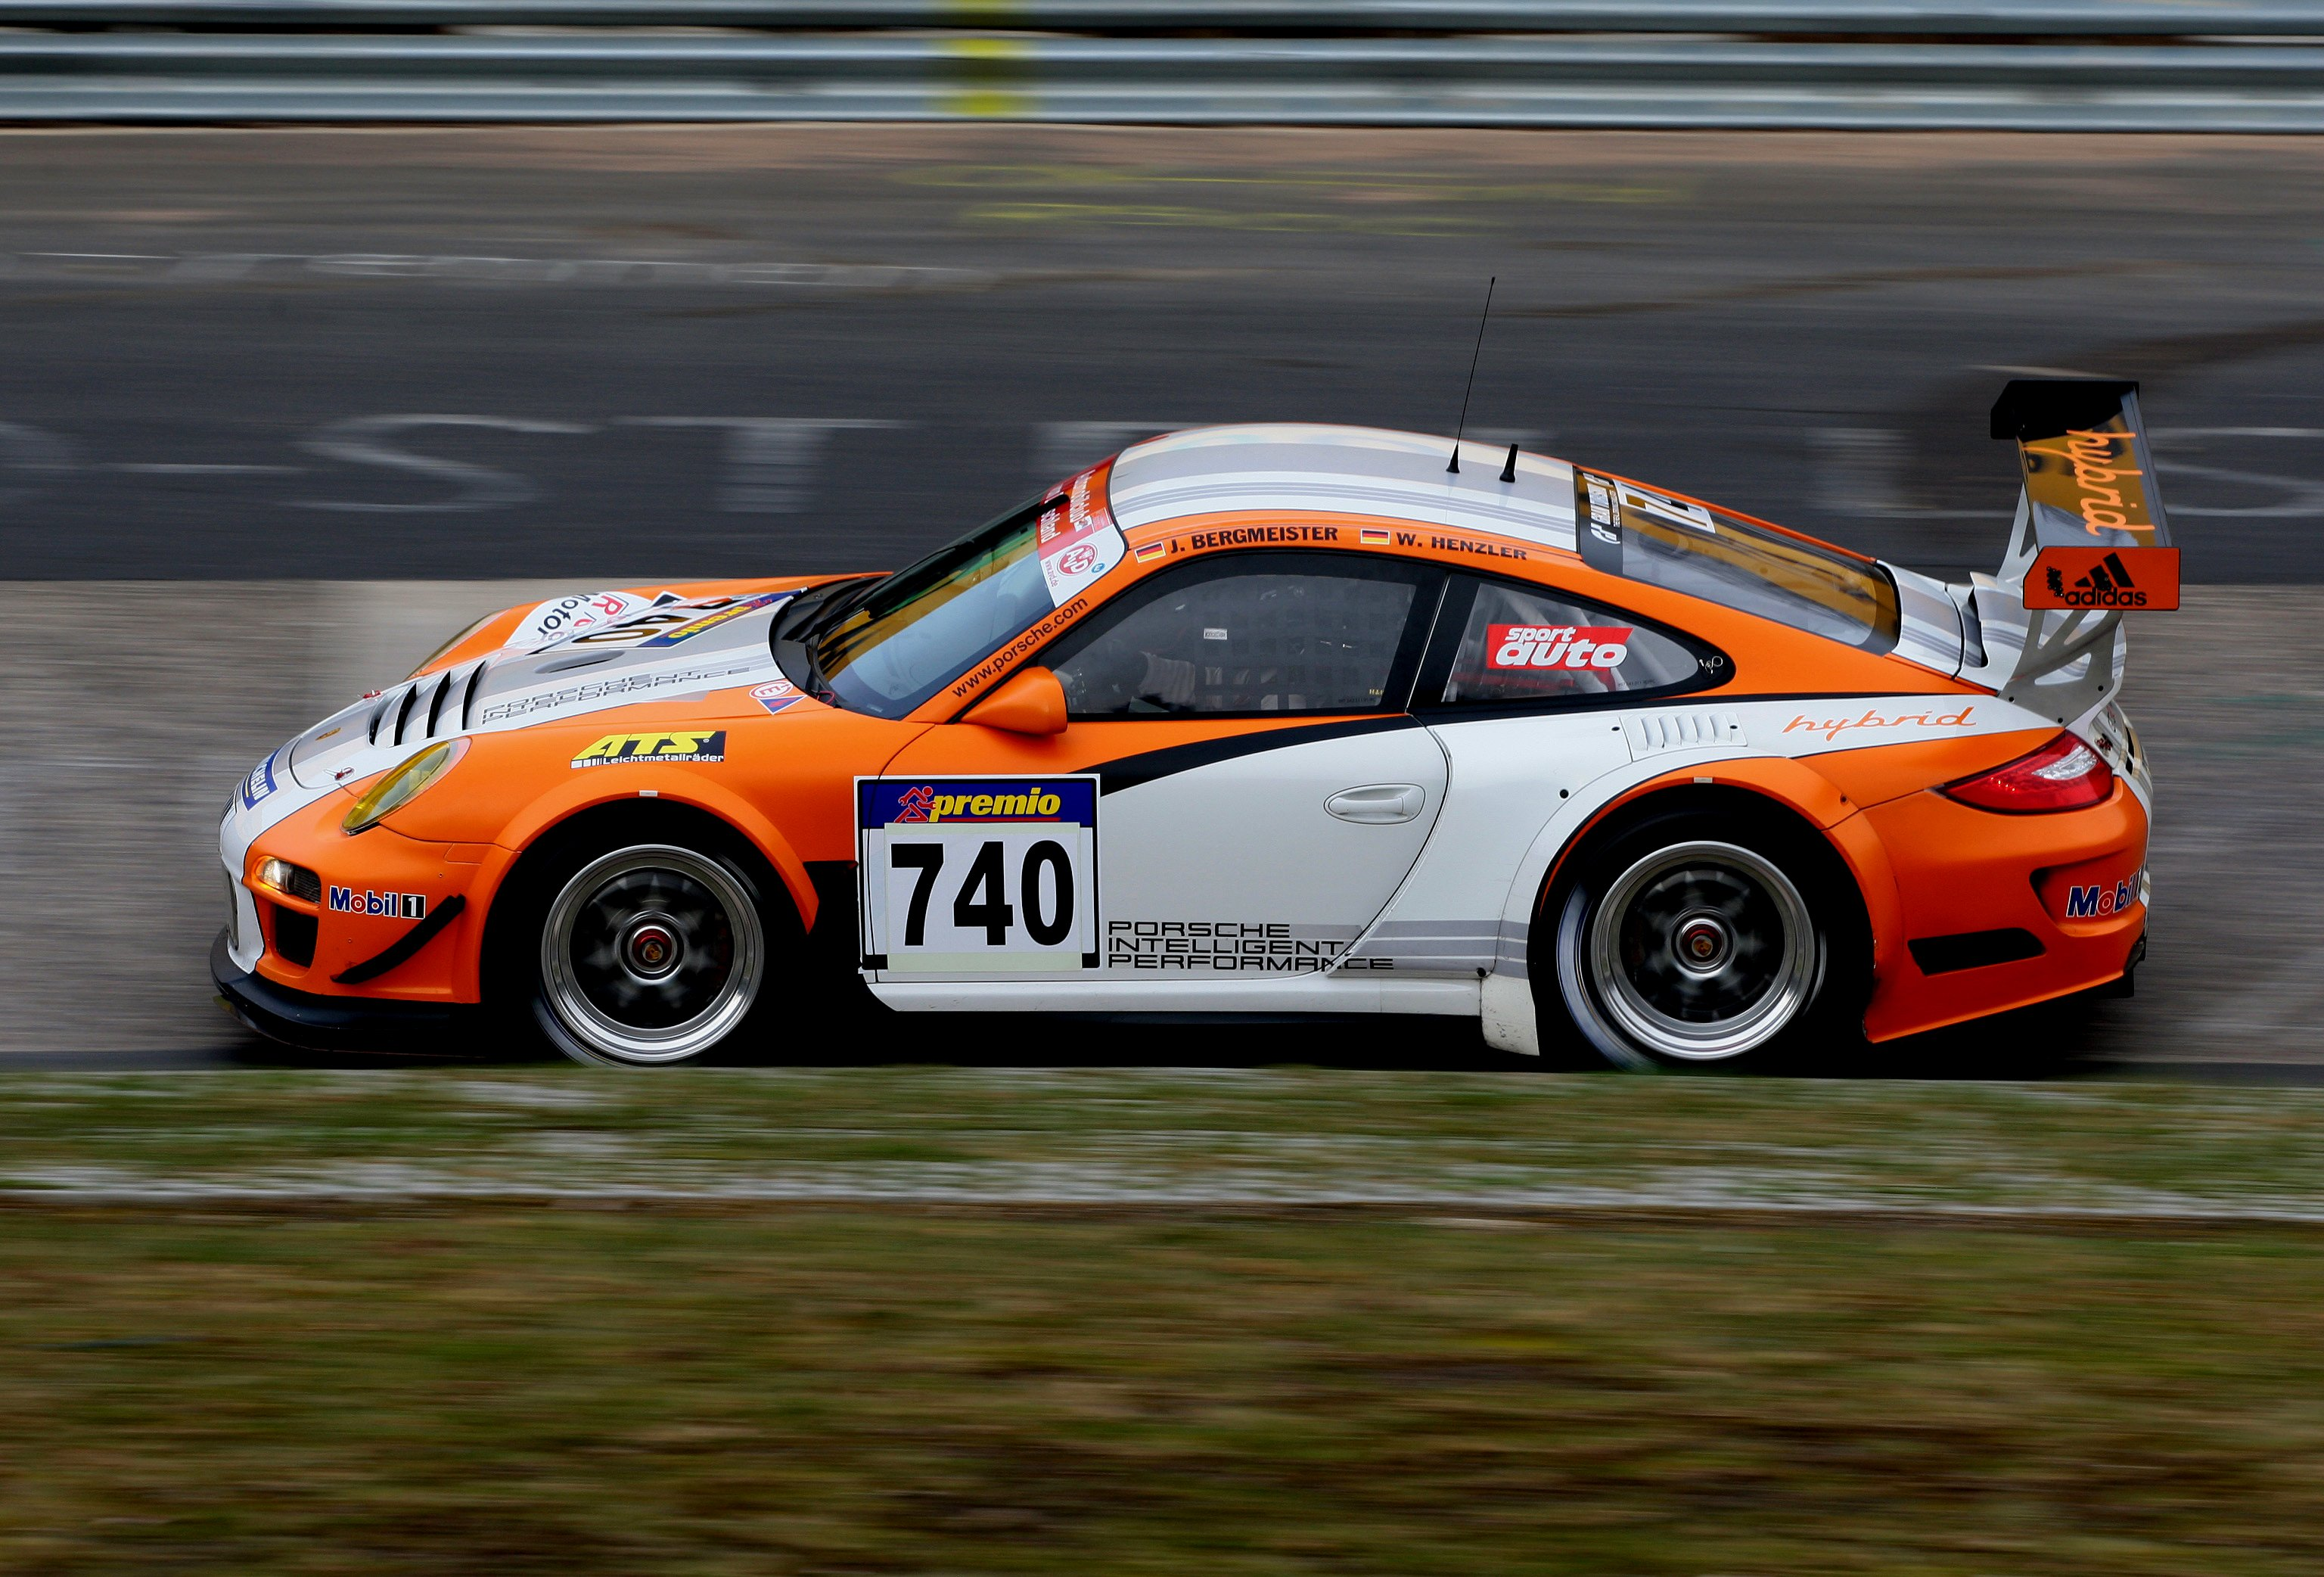 For November 7 Porsche Then Plans To Race The 911 Gt3 R